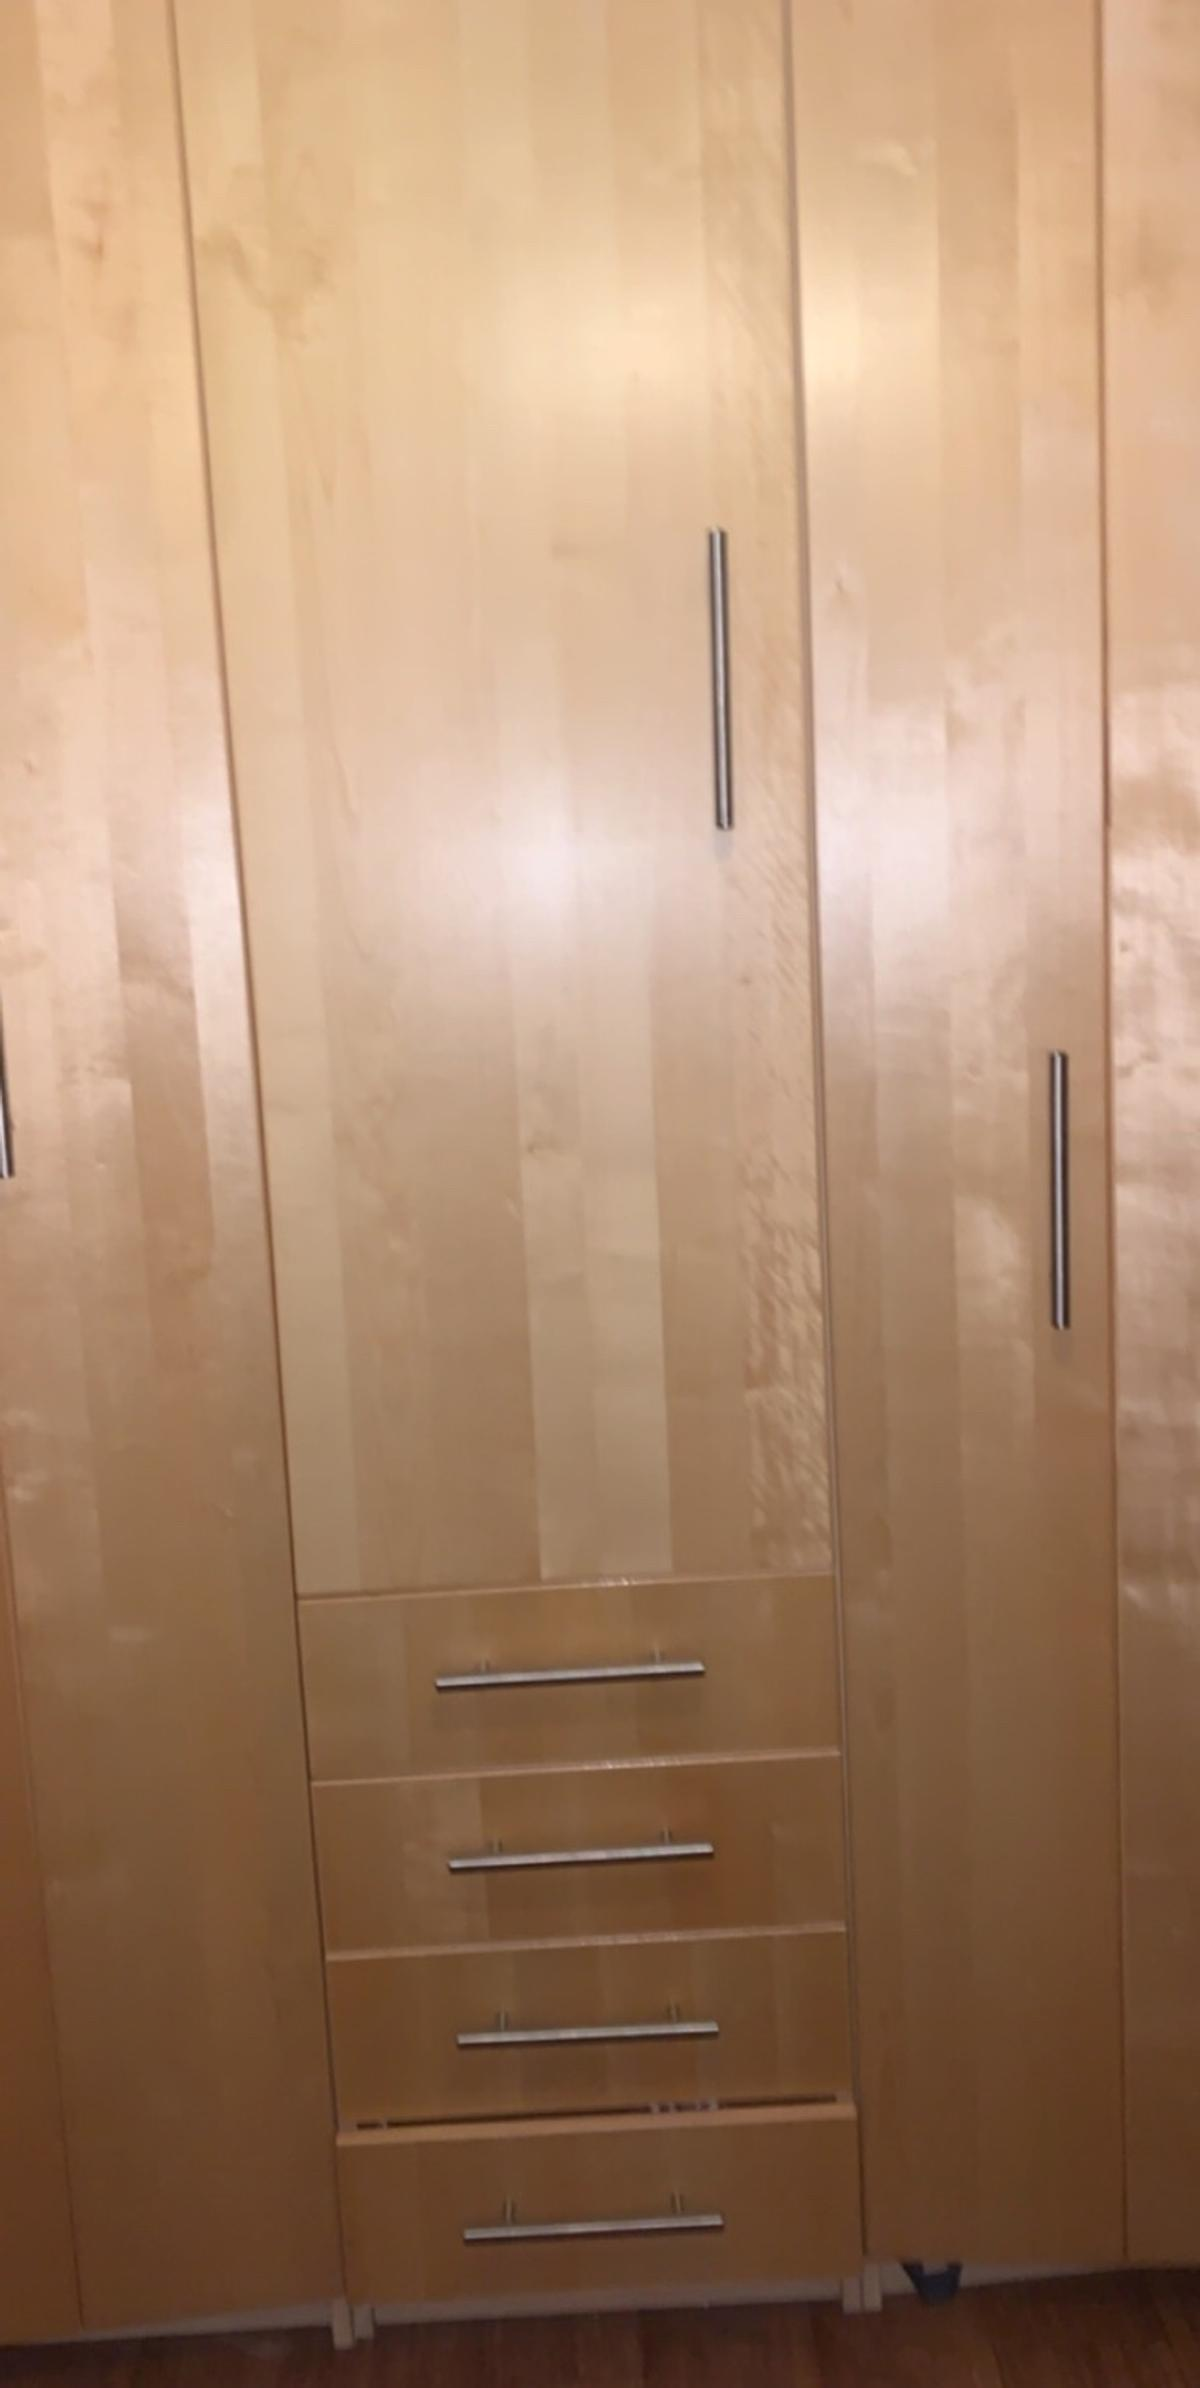 2 or 3 separate tall ikea wardrobes, need gone as they're taking up too much room in my flat, buyer would have to dismantle themselves and it only comes with the screws that are already fitted may be missing some I'm not too sure but stands up ok